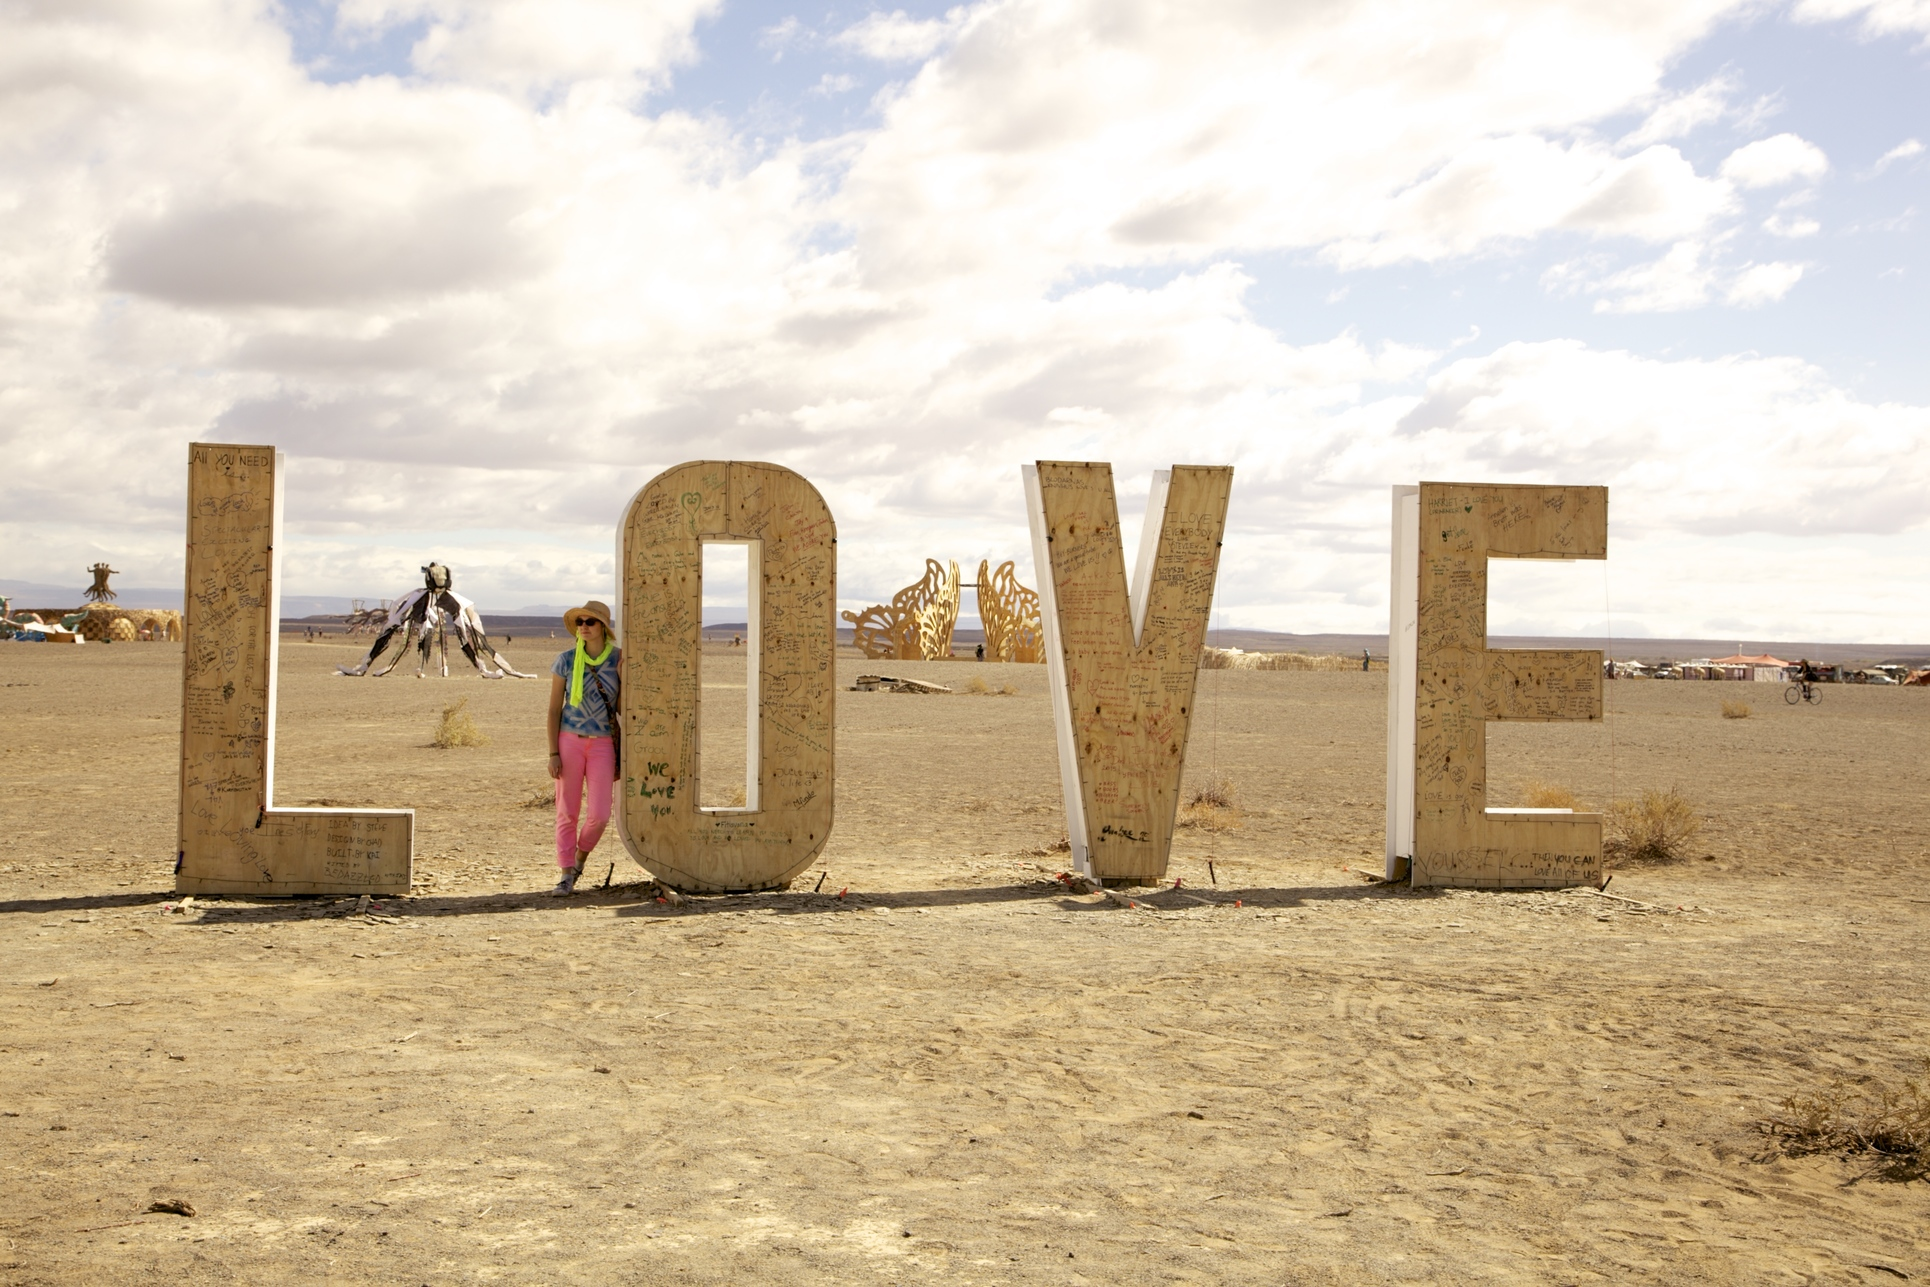 LOVE installation, Burning Man 2013